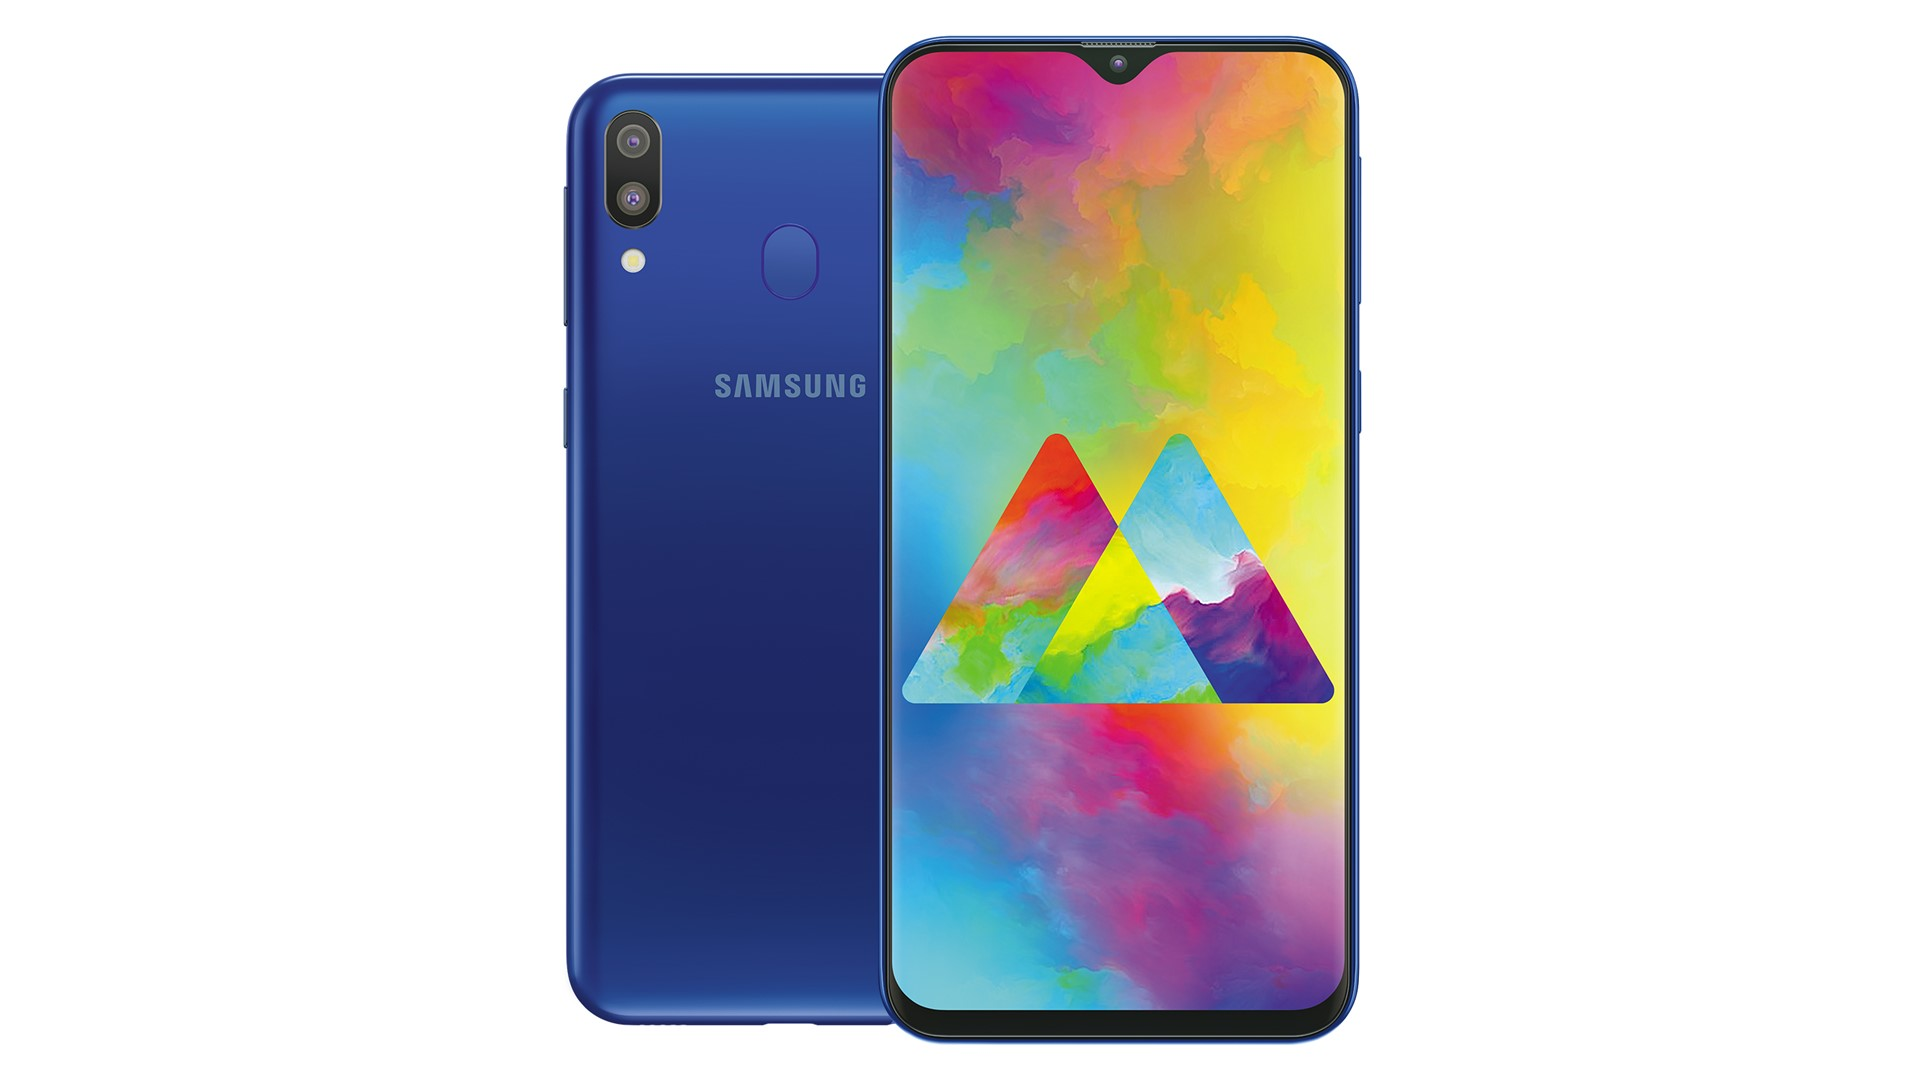 Samsung Galaxy M10 Vs Samsung Galaxy M20 What S The Difference